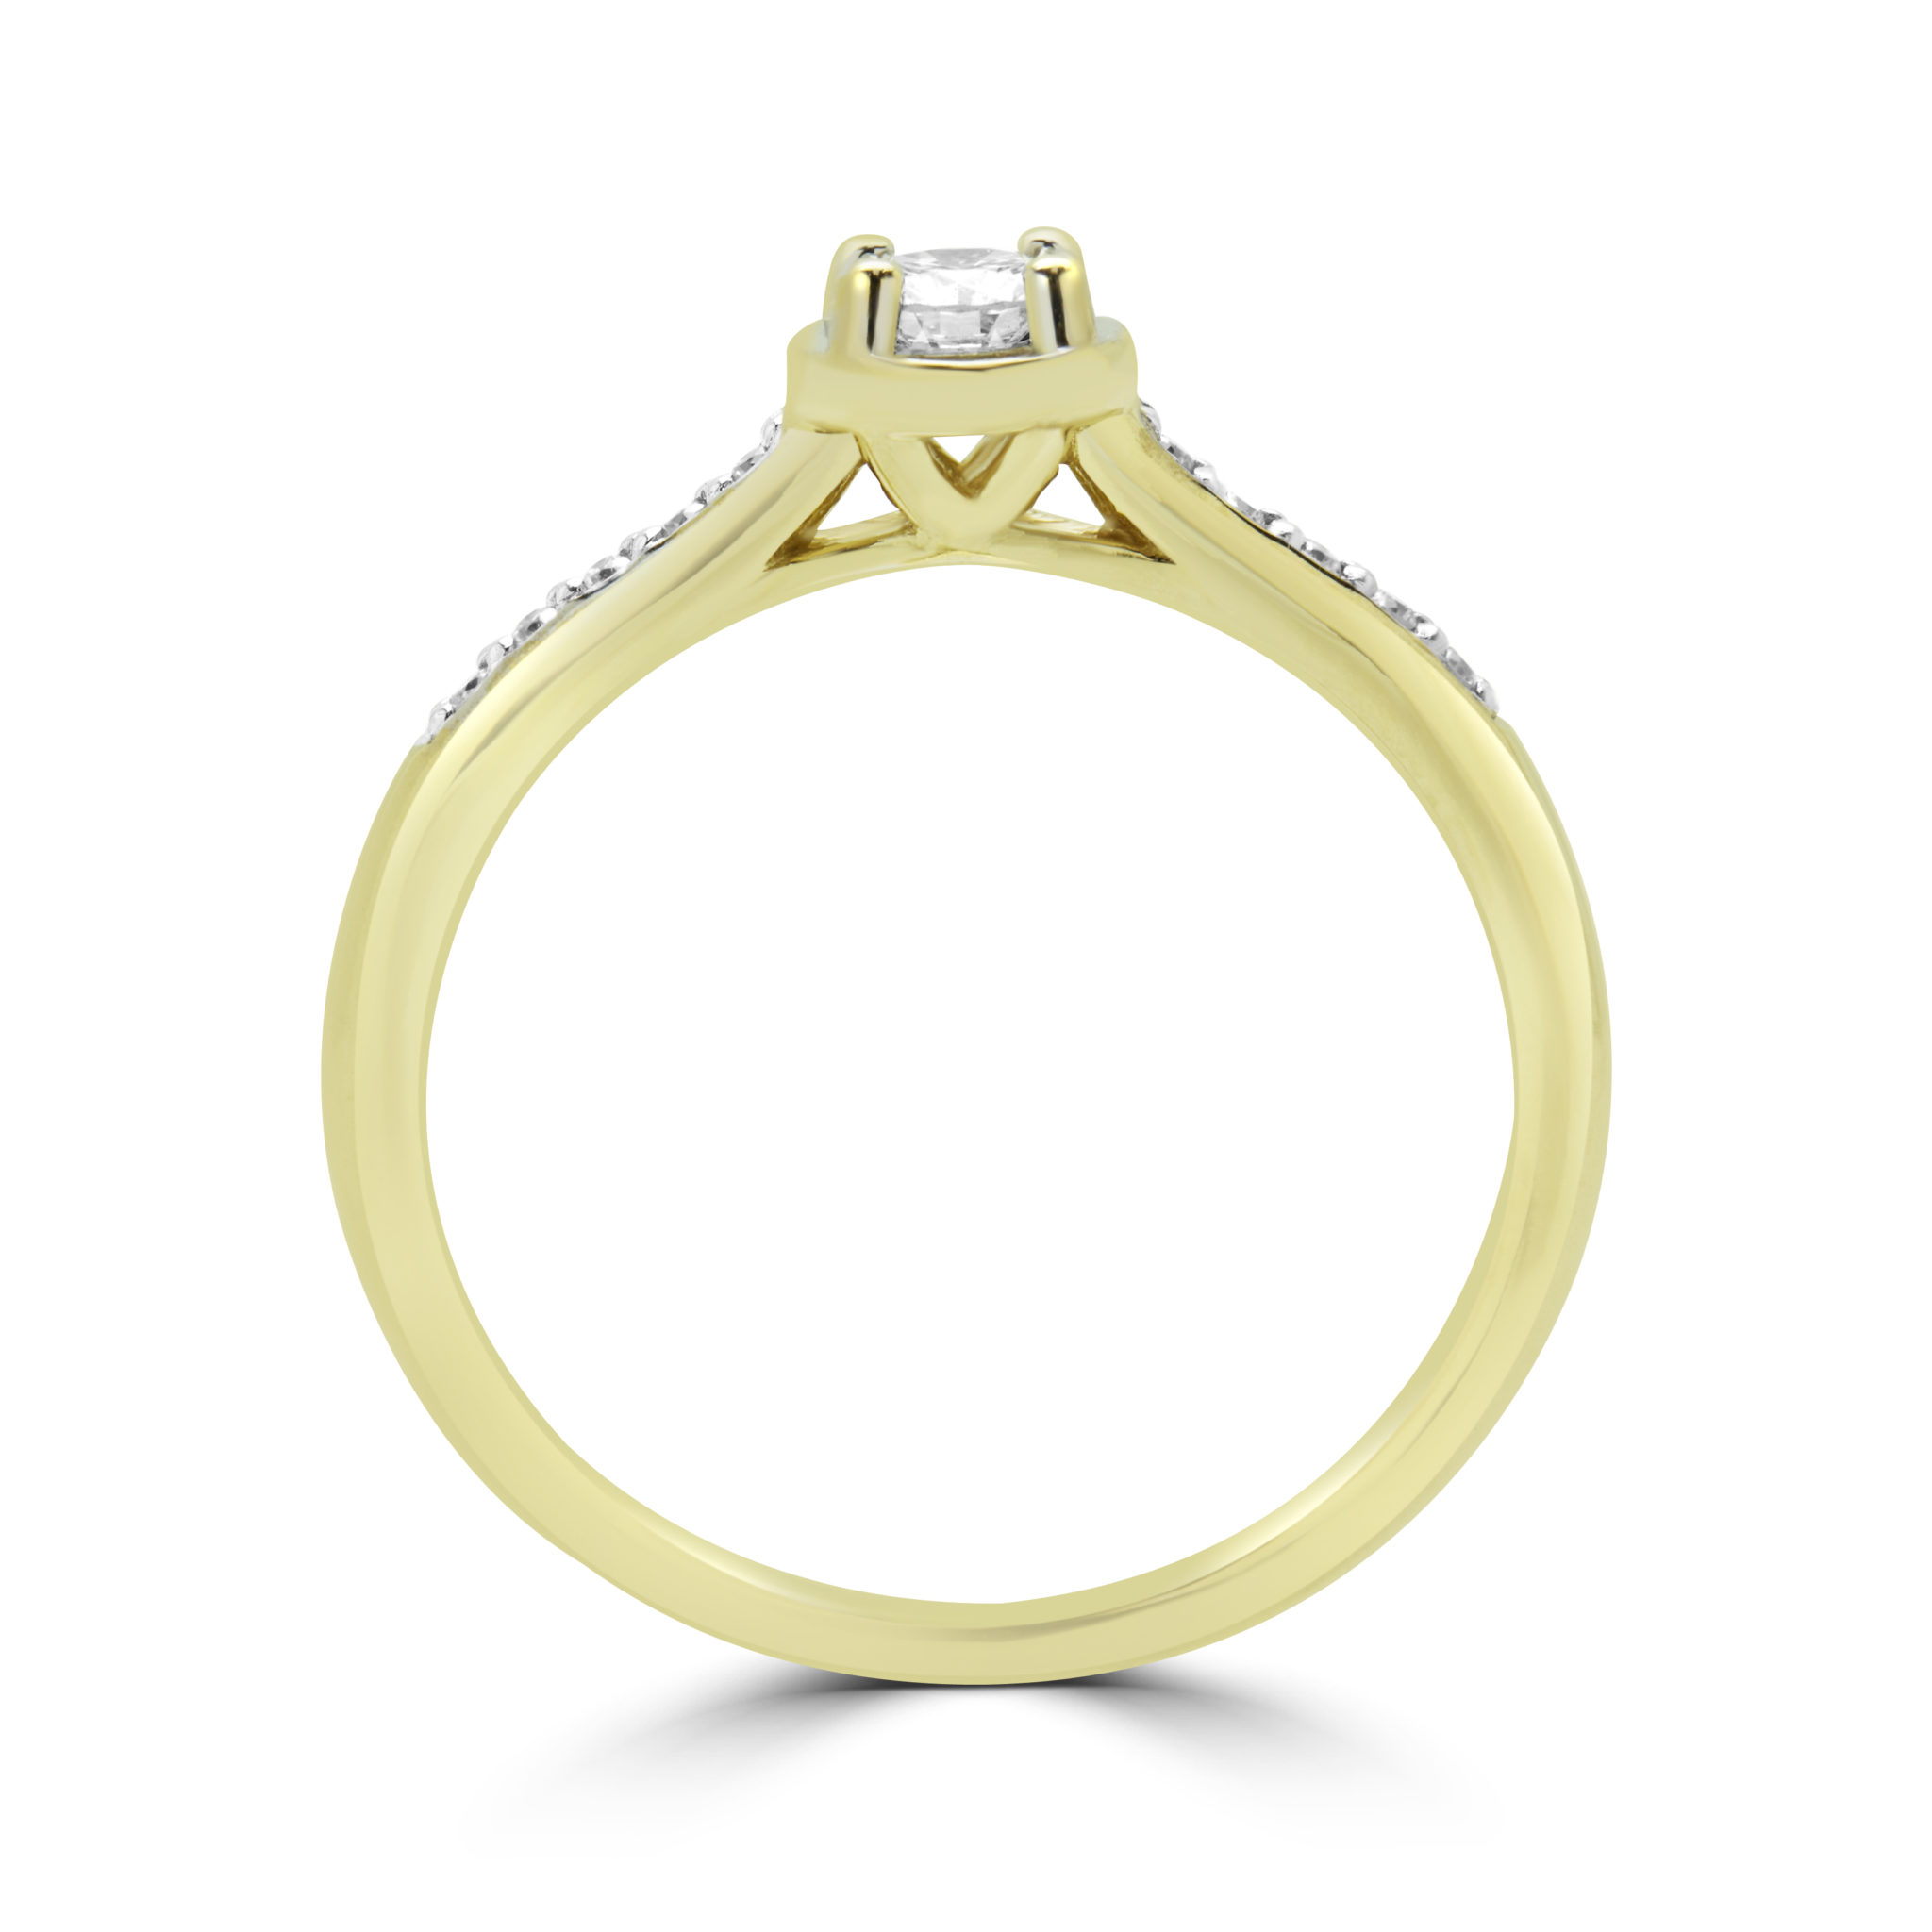 Fashionable solitaire diamond engagement ring